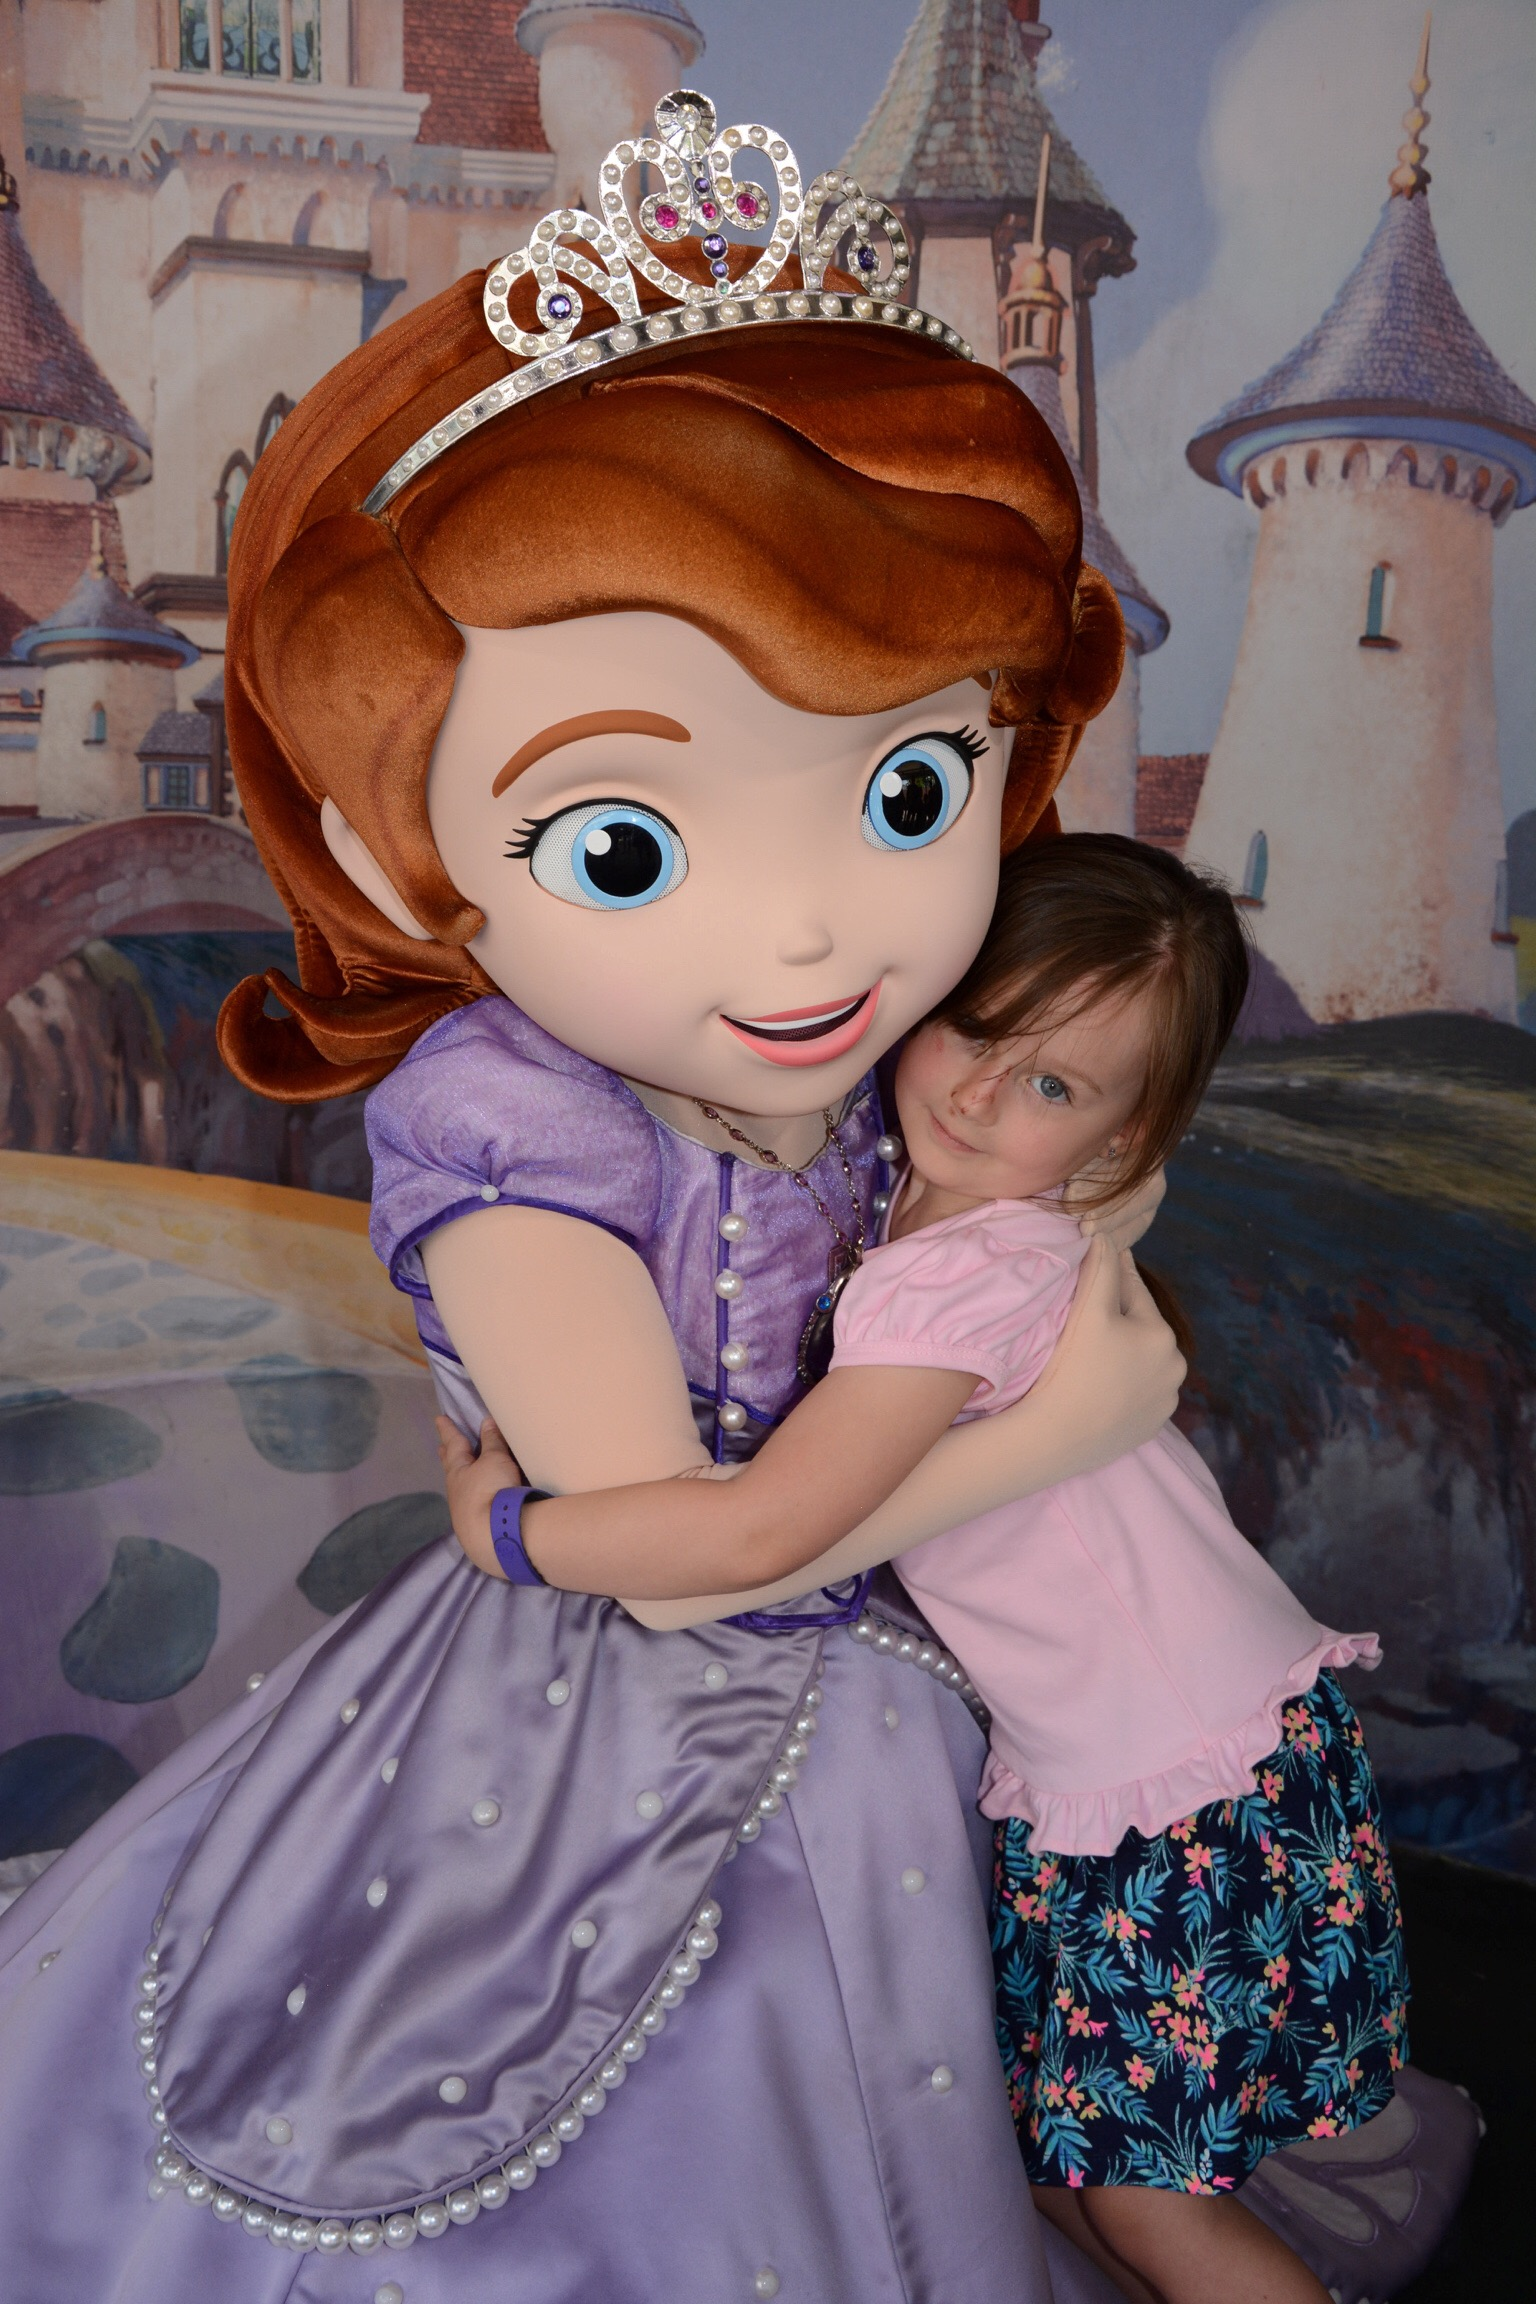 Penelope and Princess Sofia